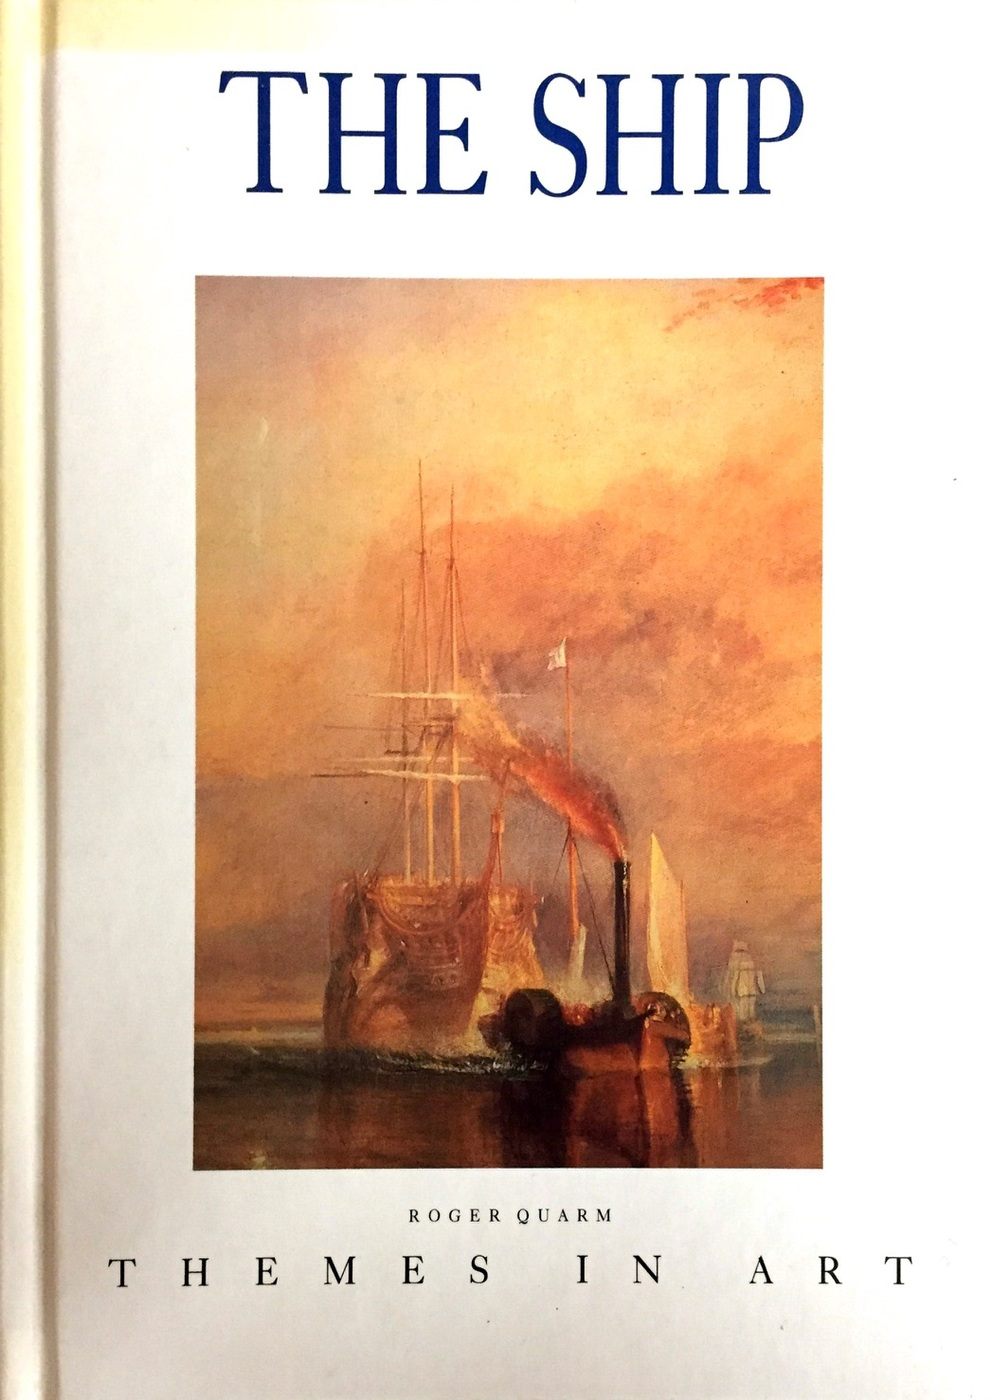 Roger Quarm. Themes in Art: The Ship